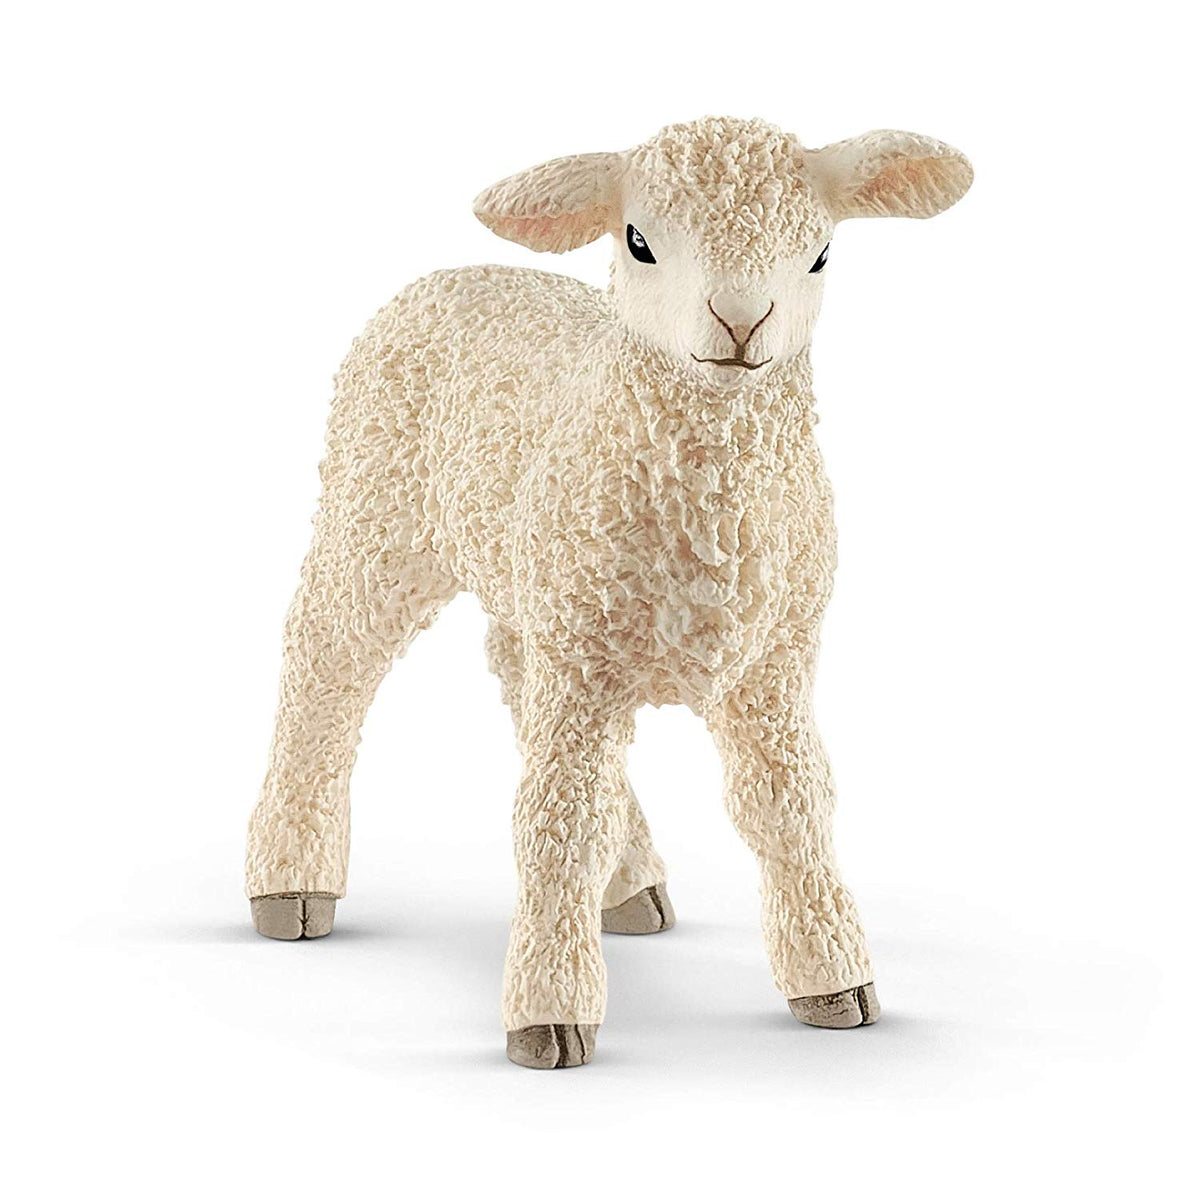 Schleich 13883 Farm World Lamb